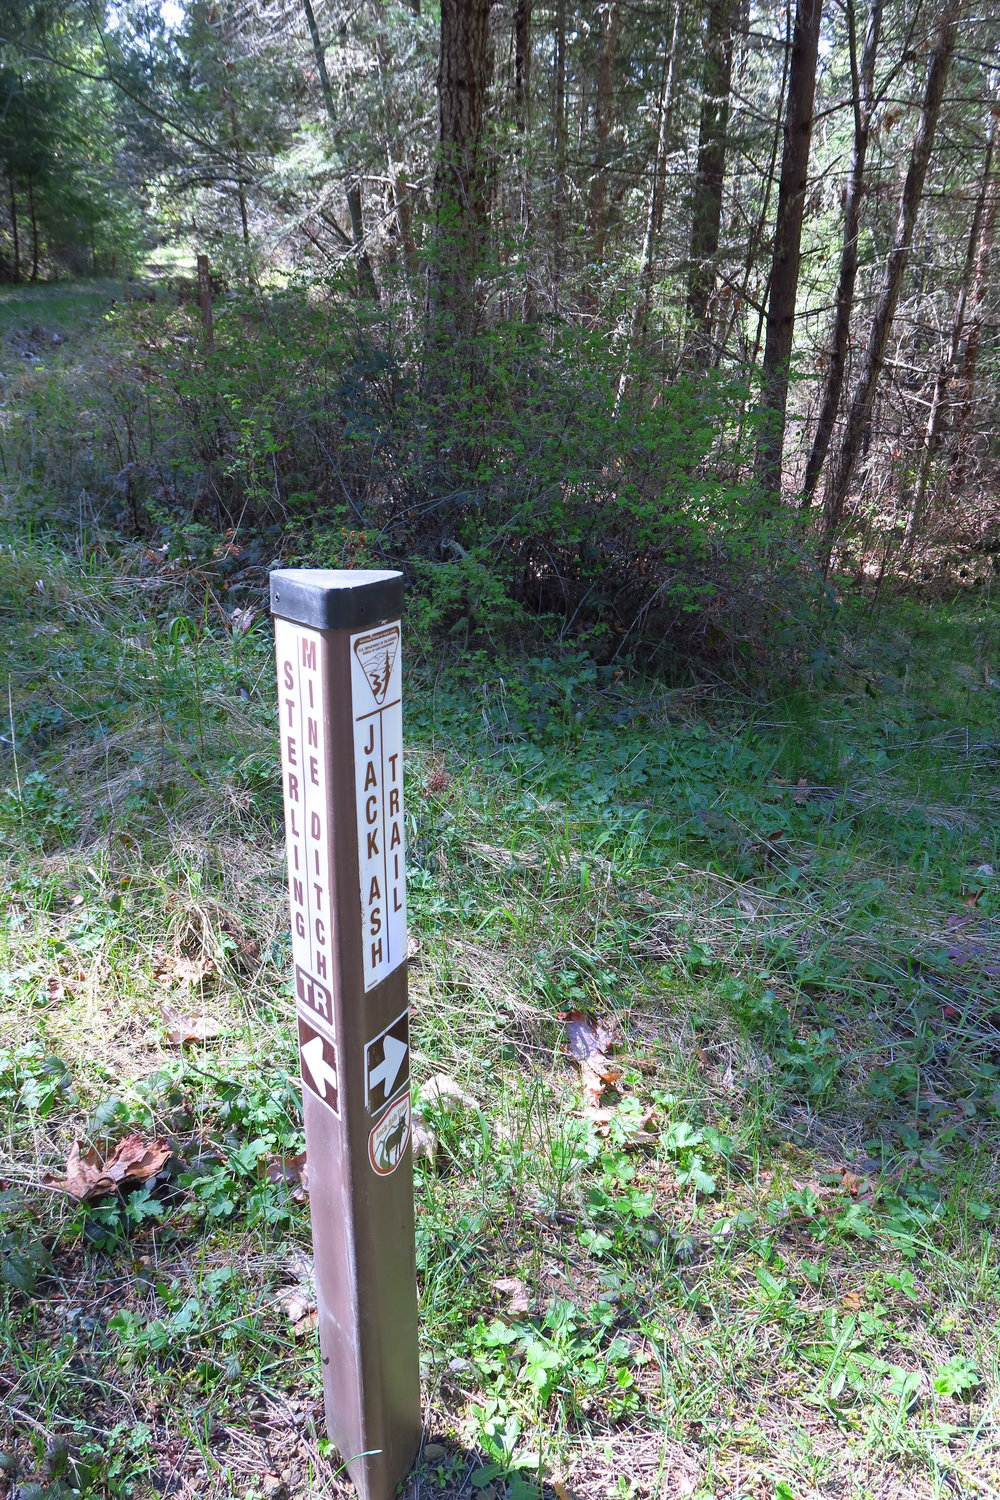 This trail marker is where the two routes diverge, the long route turns left to the SMDT and the short route goes right to continue on the Jack Ash.